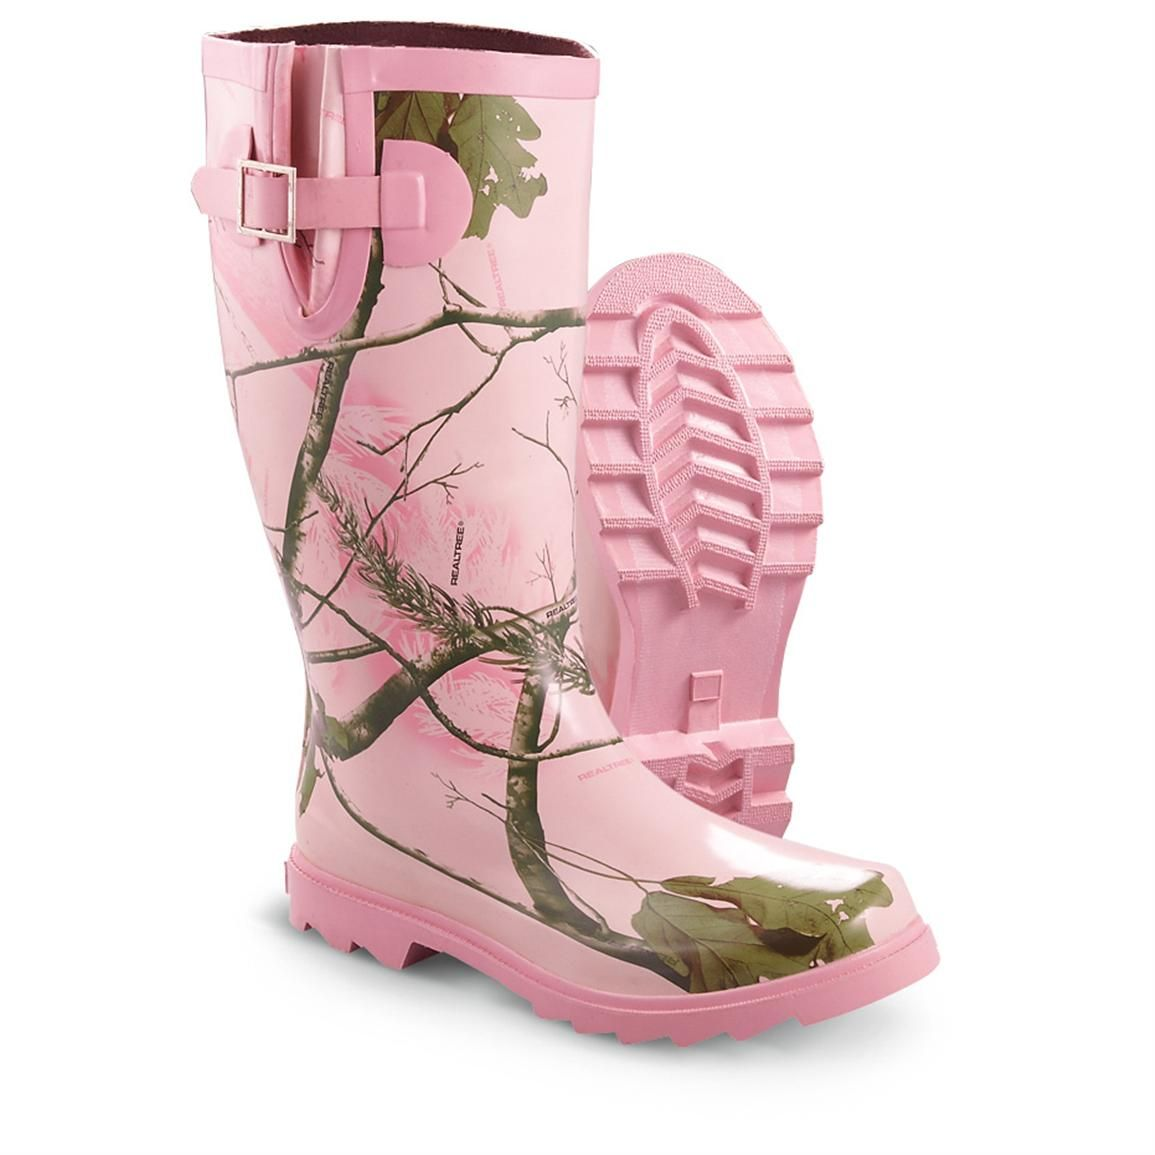 44 best ideas about pink camo shoes on Pinterest | Women's ...